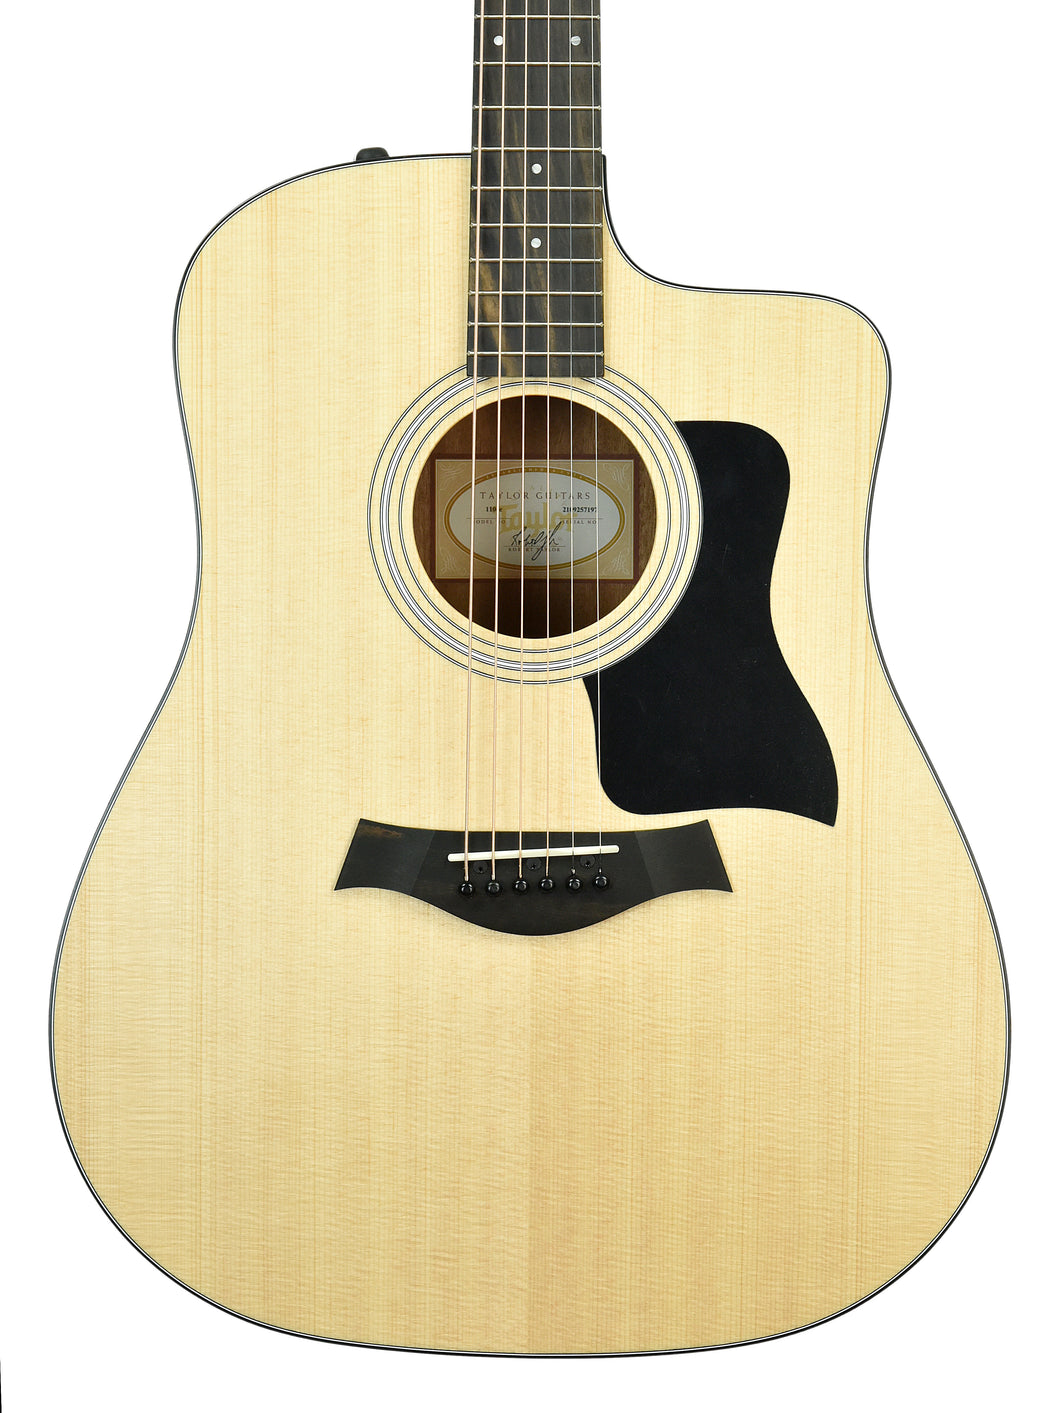 Taylor 110ce Acoustic Guitar SN# 2109257197